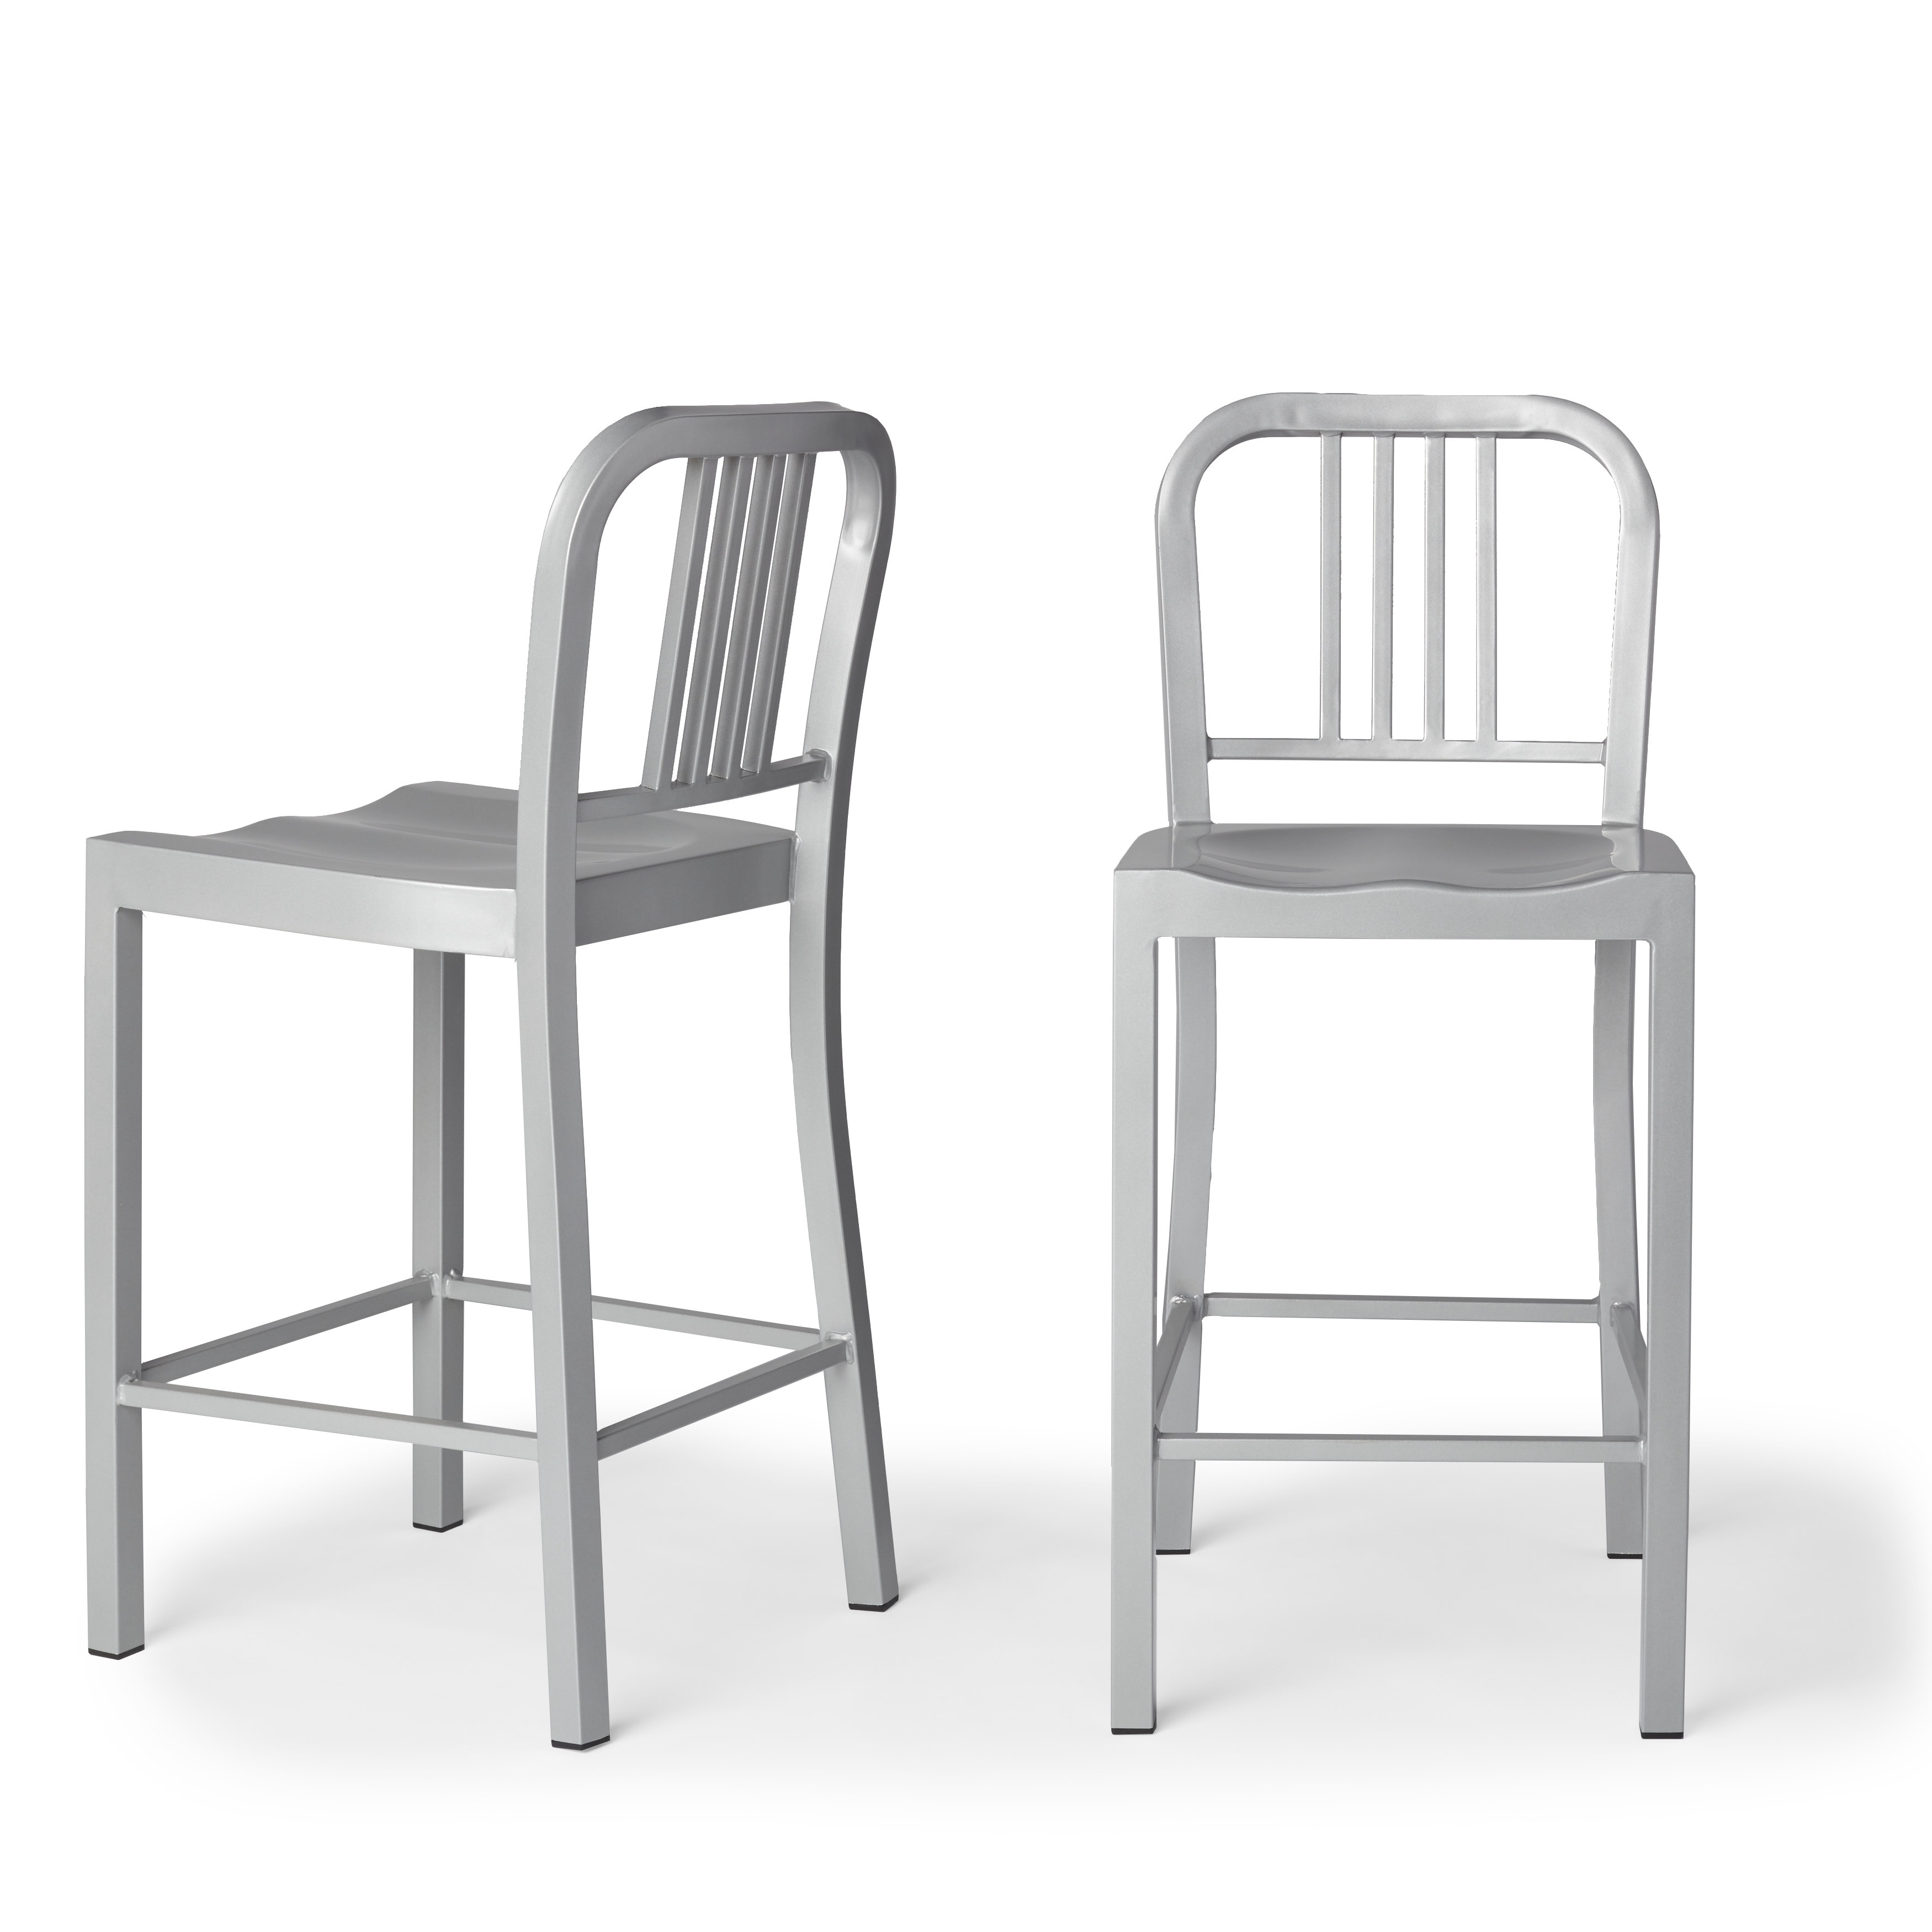 aluminum bar stools without backs photo - 8